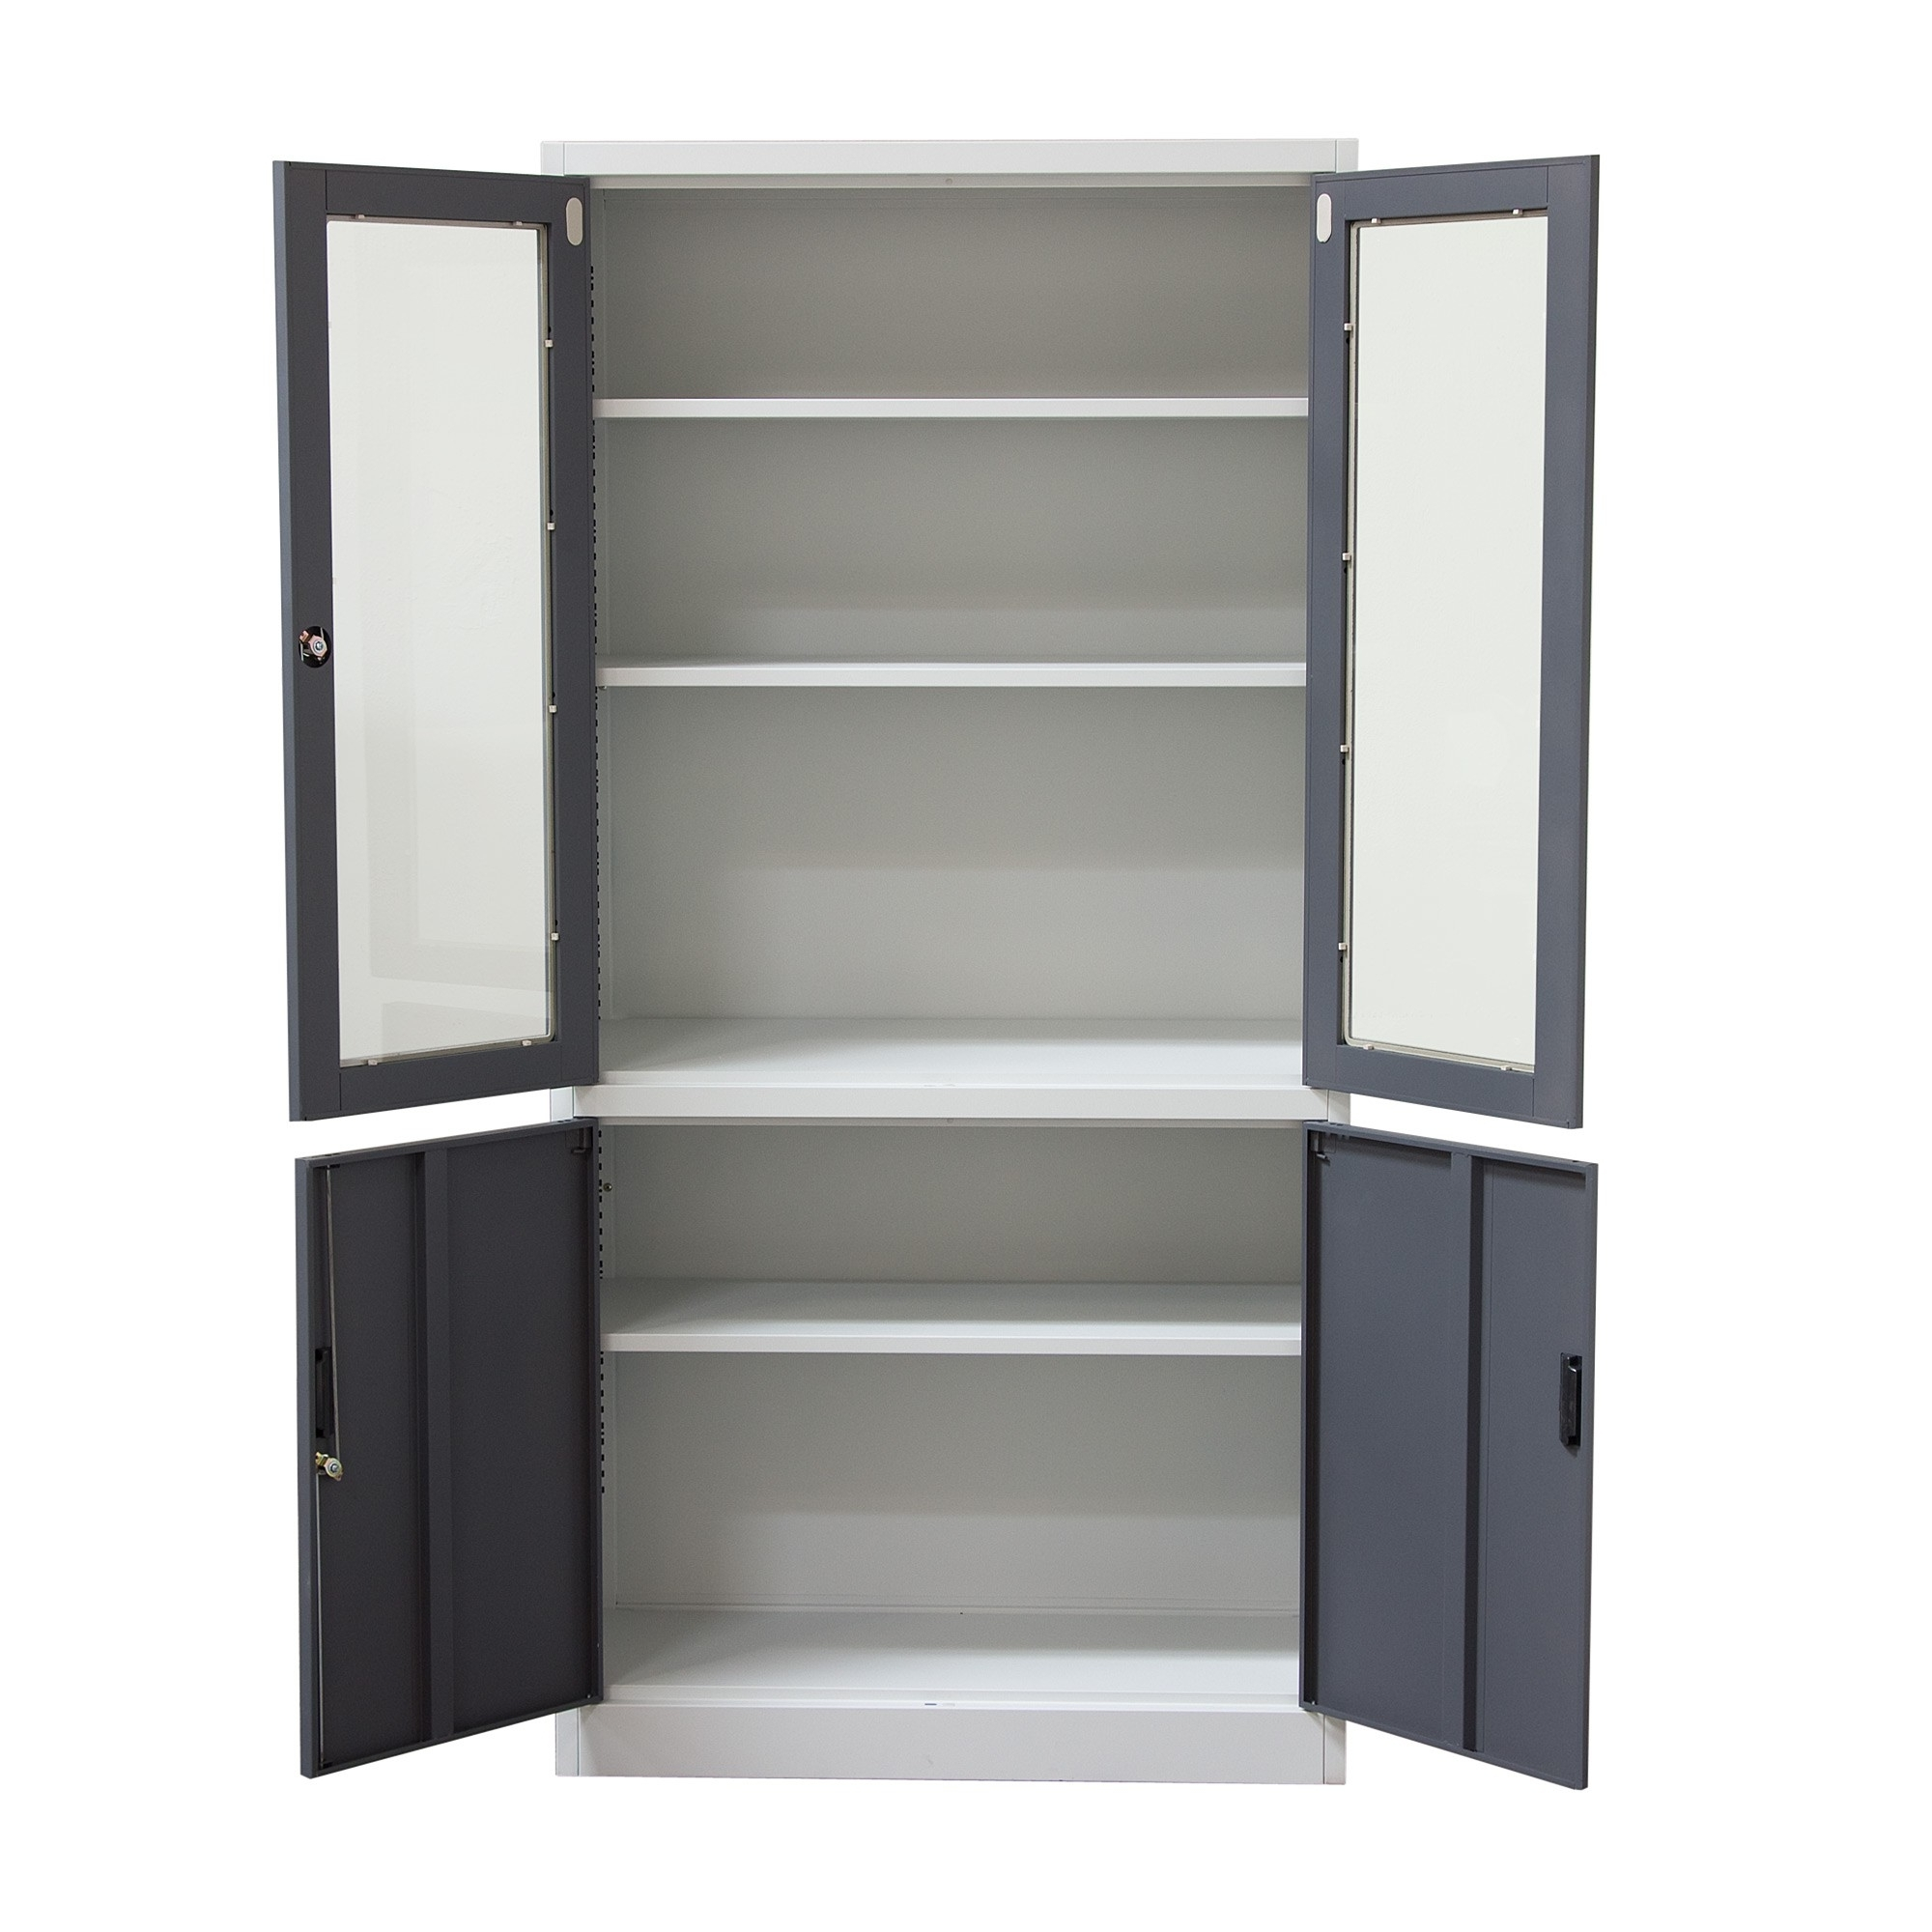 Trendy Furniture Shelf Bookcase Sliding Glass Doors In White With Grey With Regard To Black Bookcases With Doors (View 12 of 15)